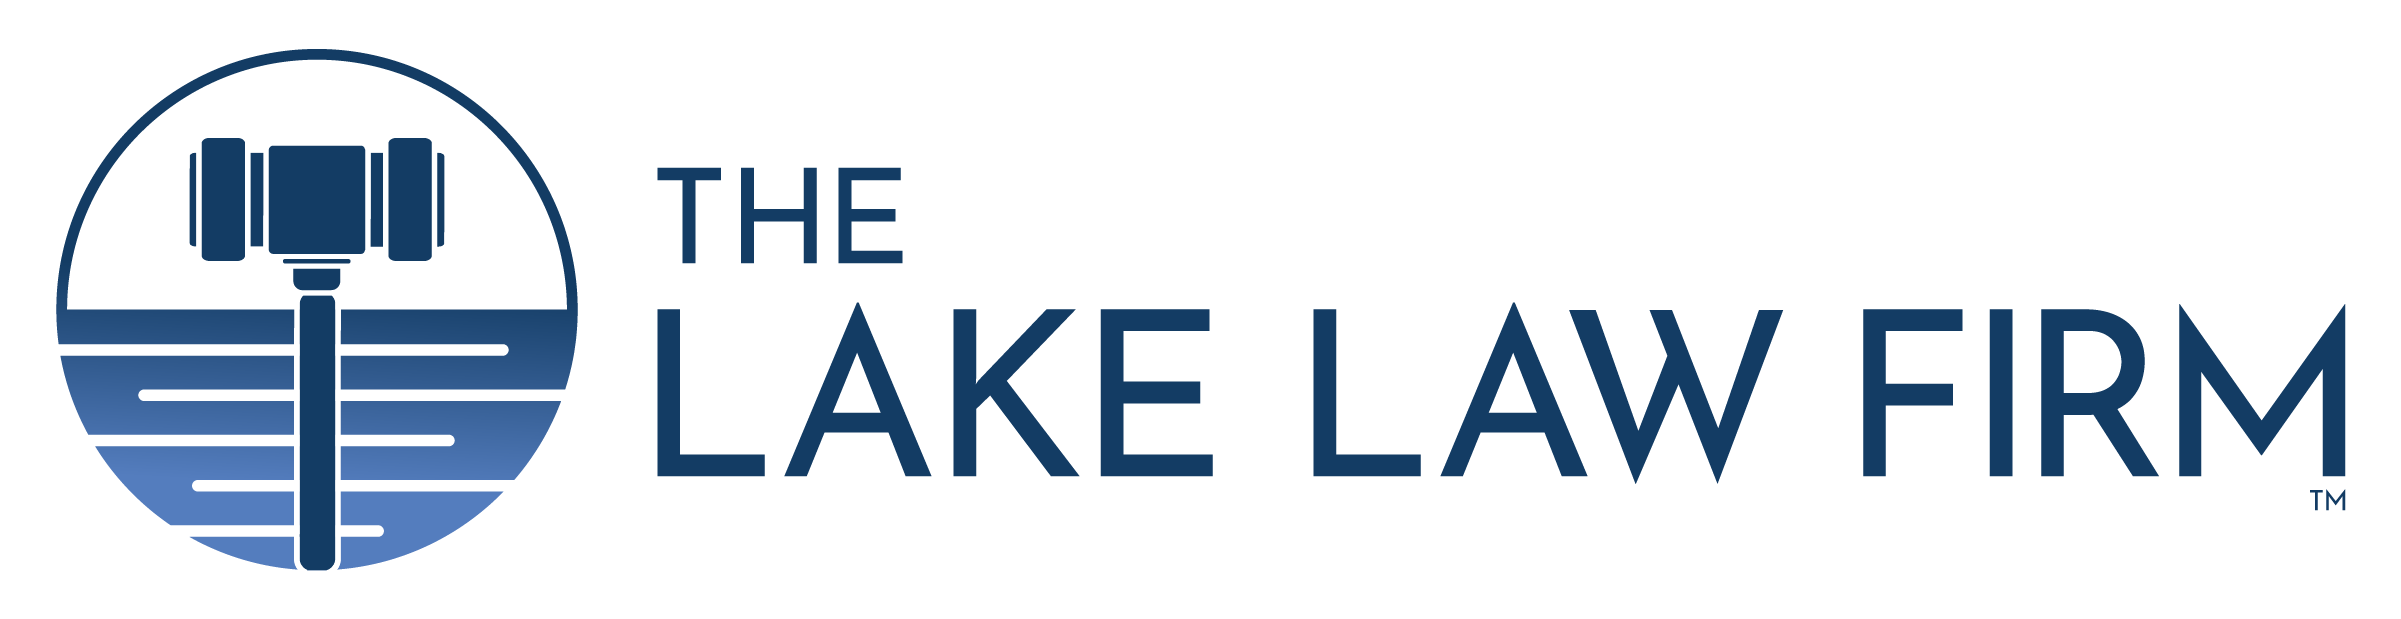 The Lake Law Firm